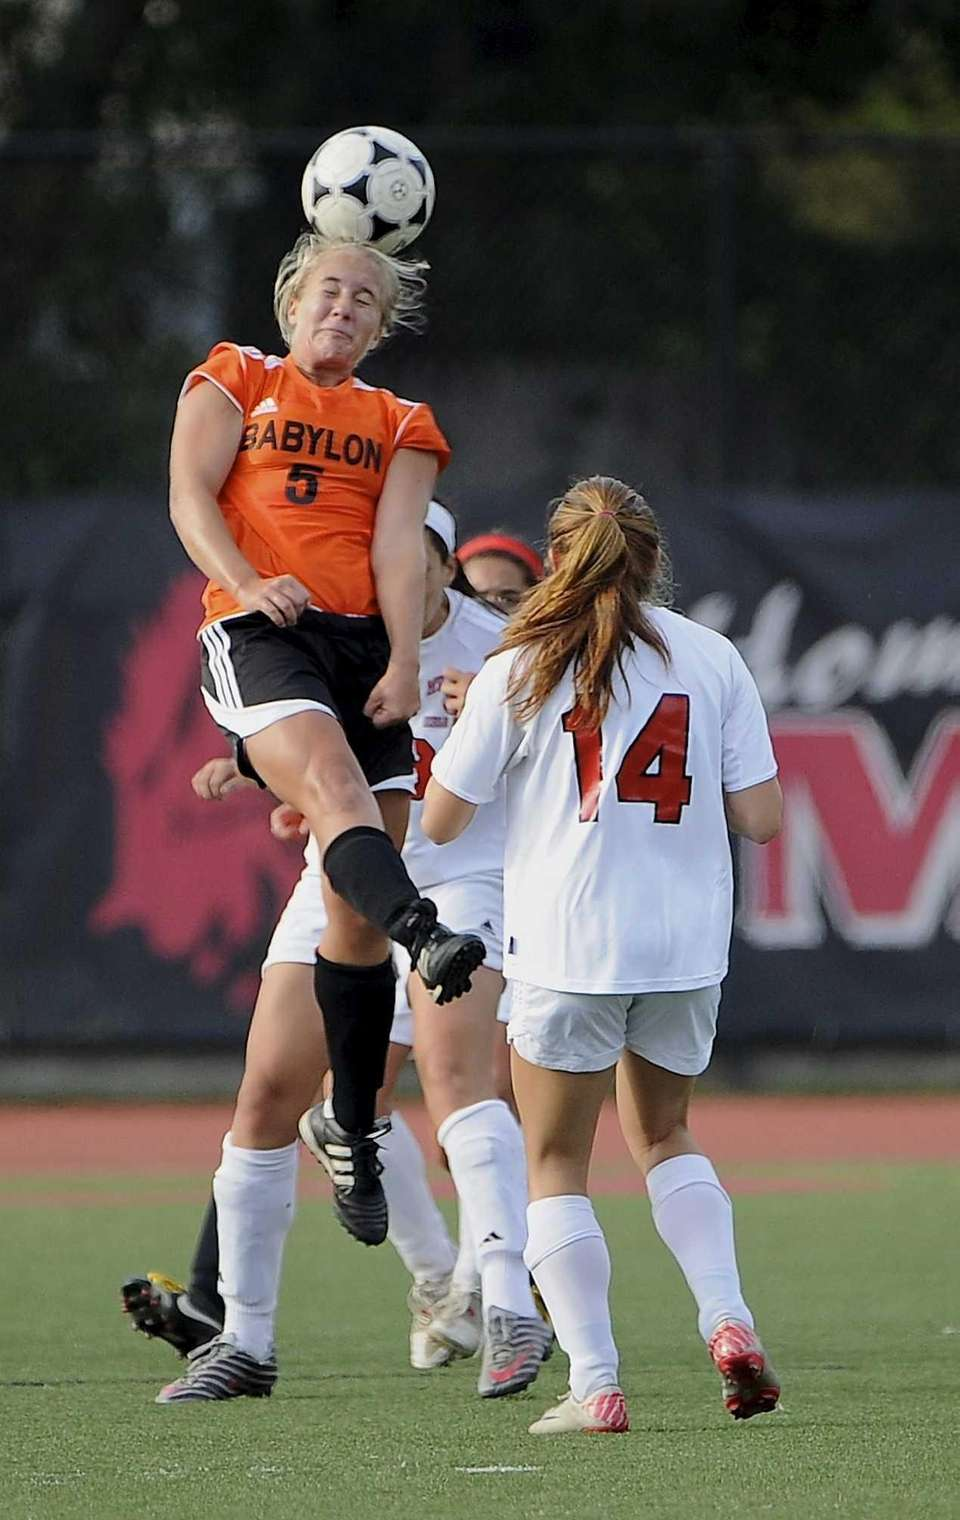 Babylon's Shelby Fredericks heads the ball in a